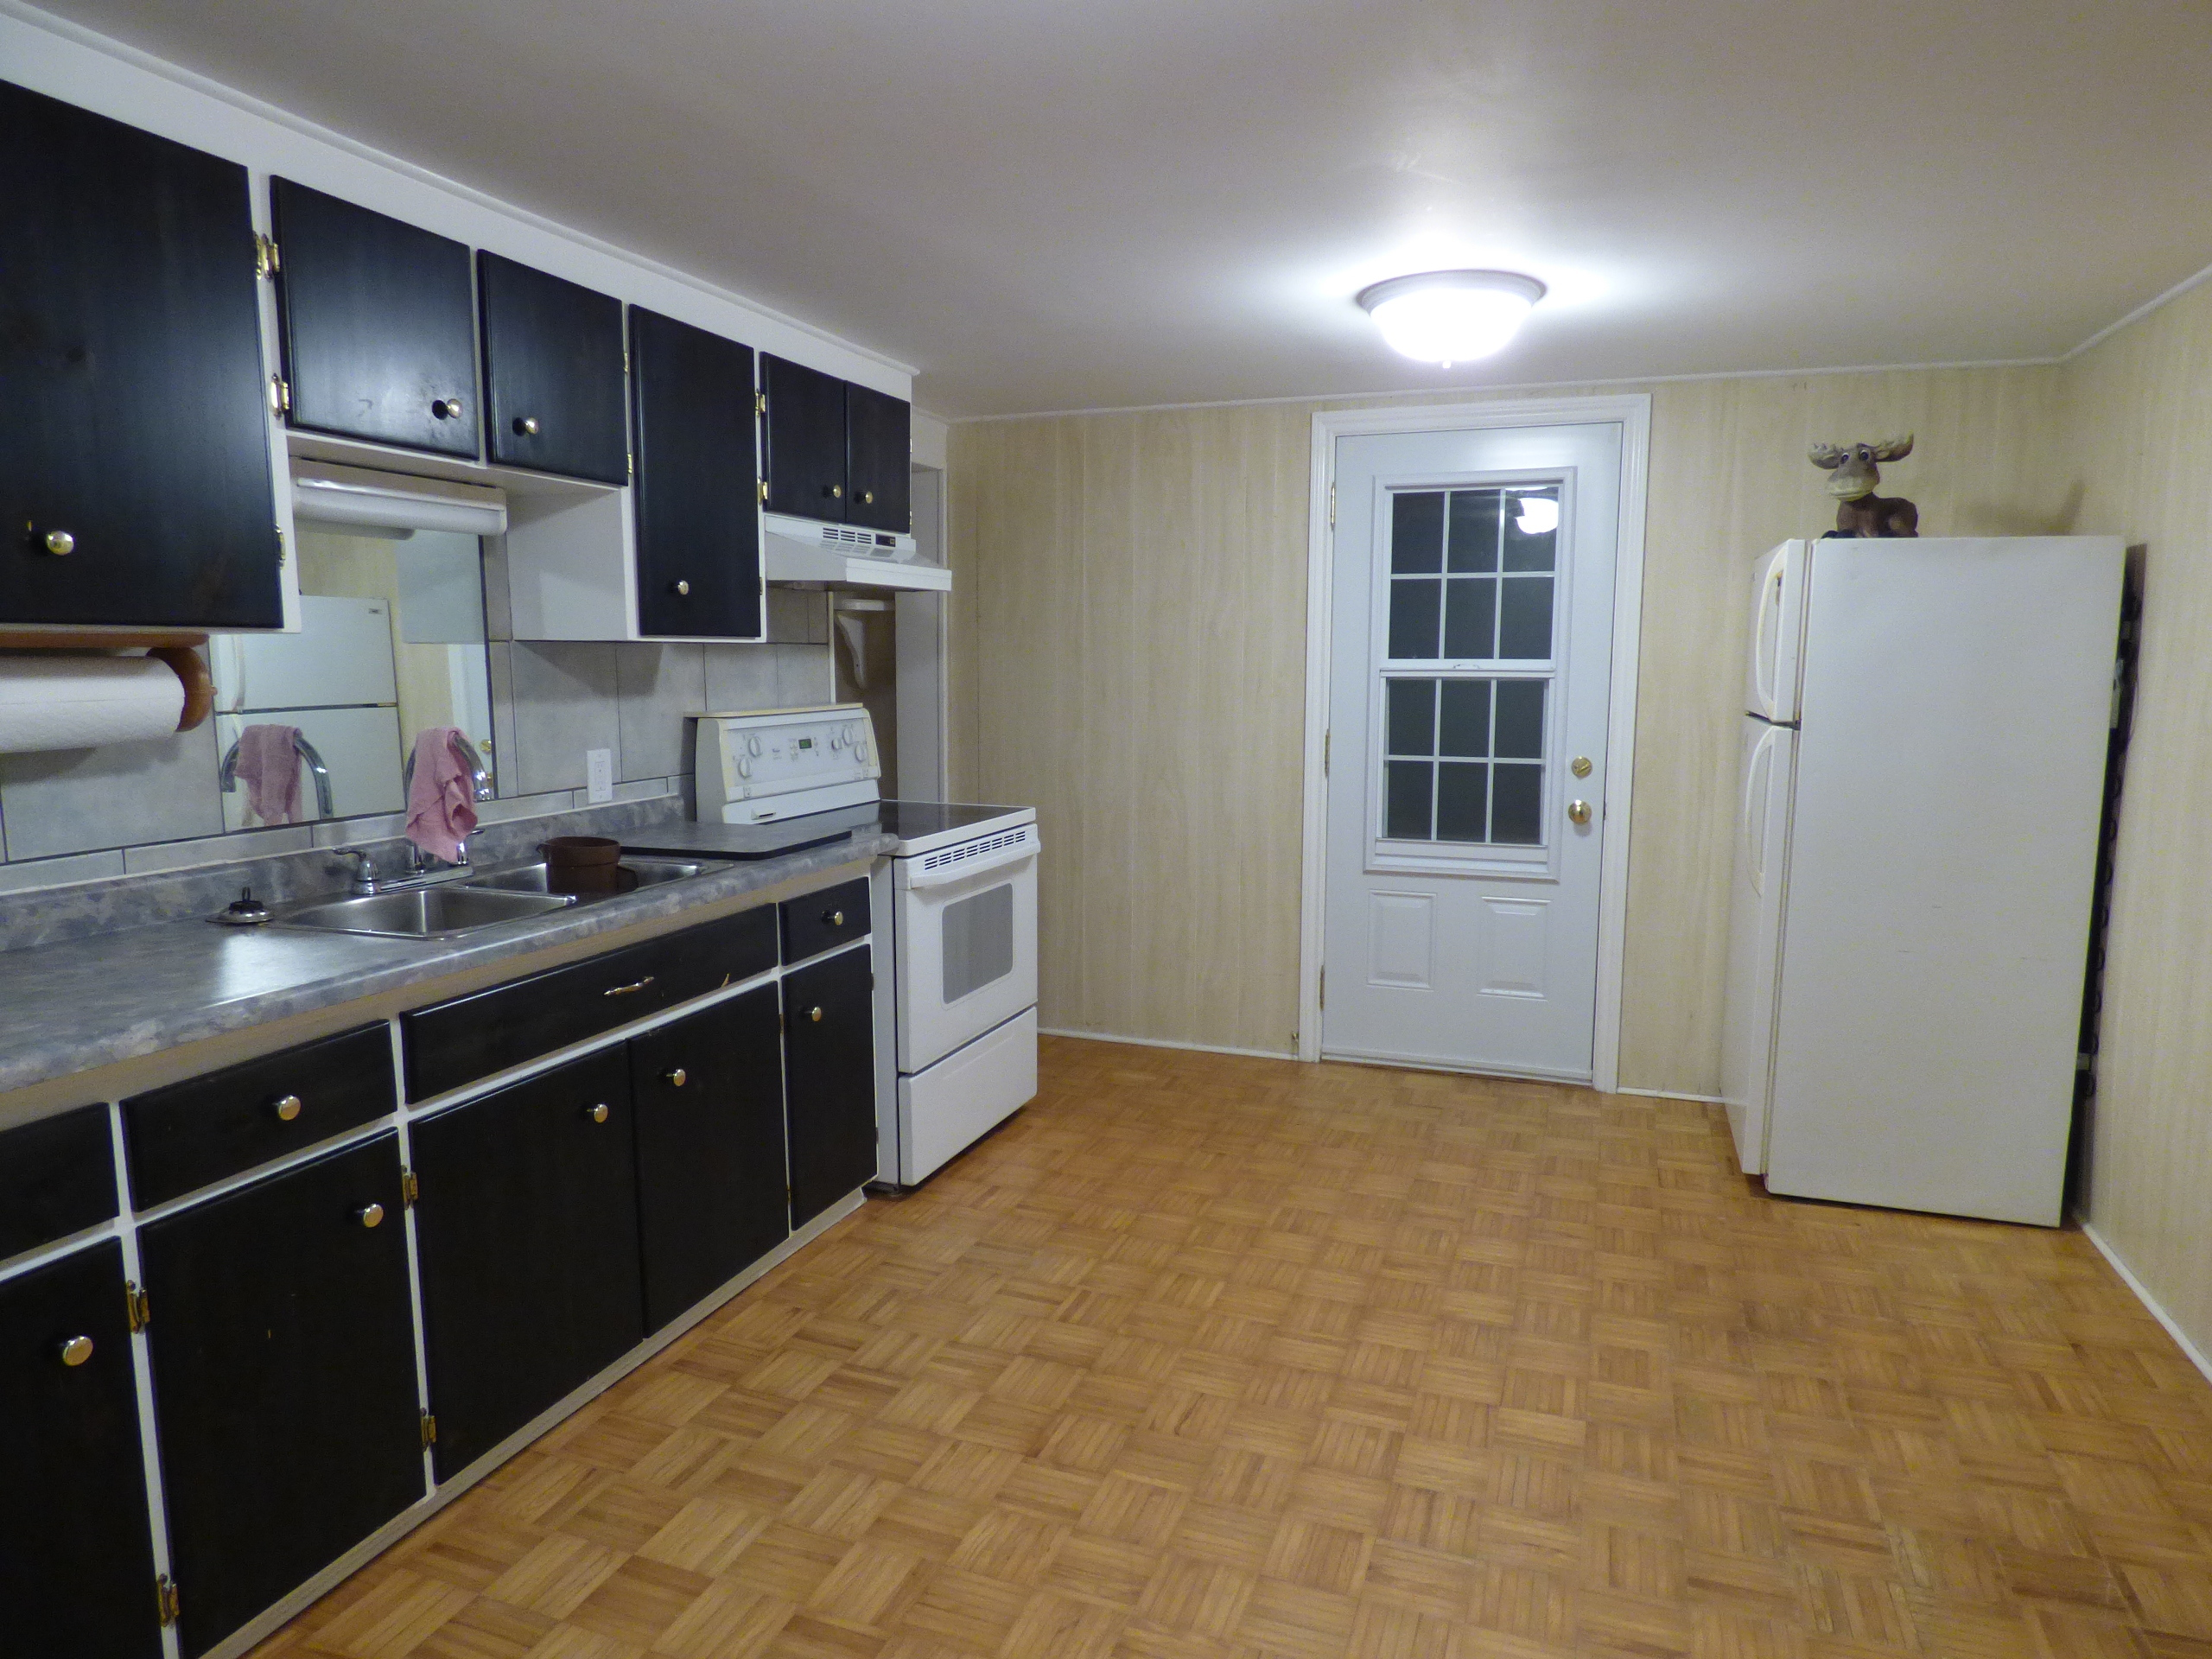 House for sale 2286 new street burlington on 1 4 acre for Separate kitchen units